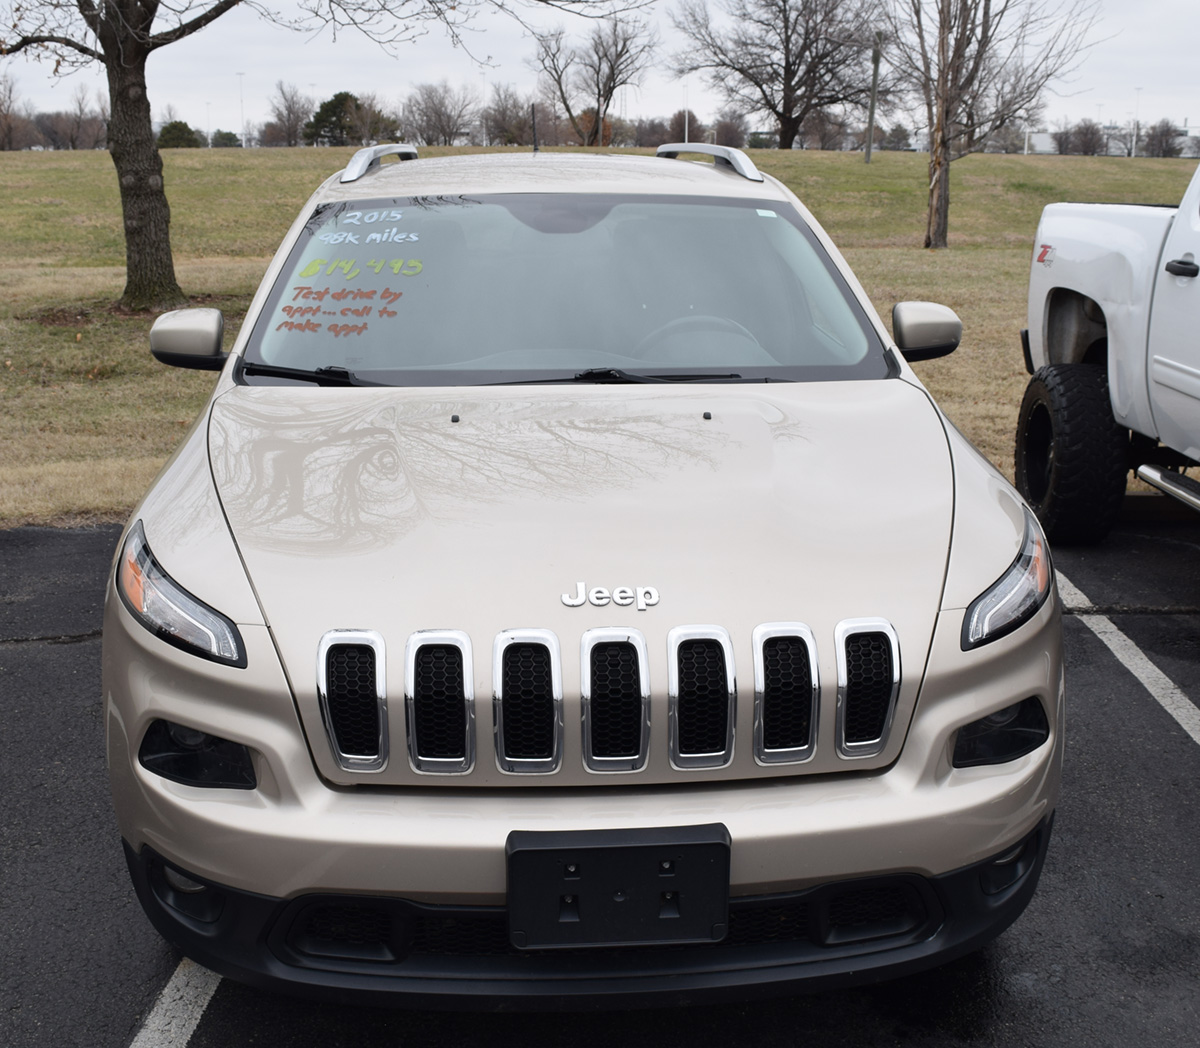 2015 Jeep Cherokee Latitude front view